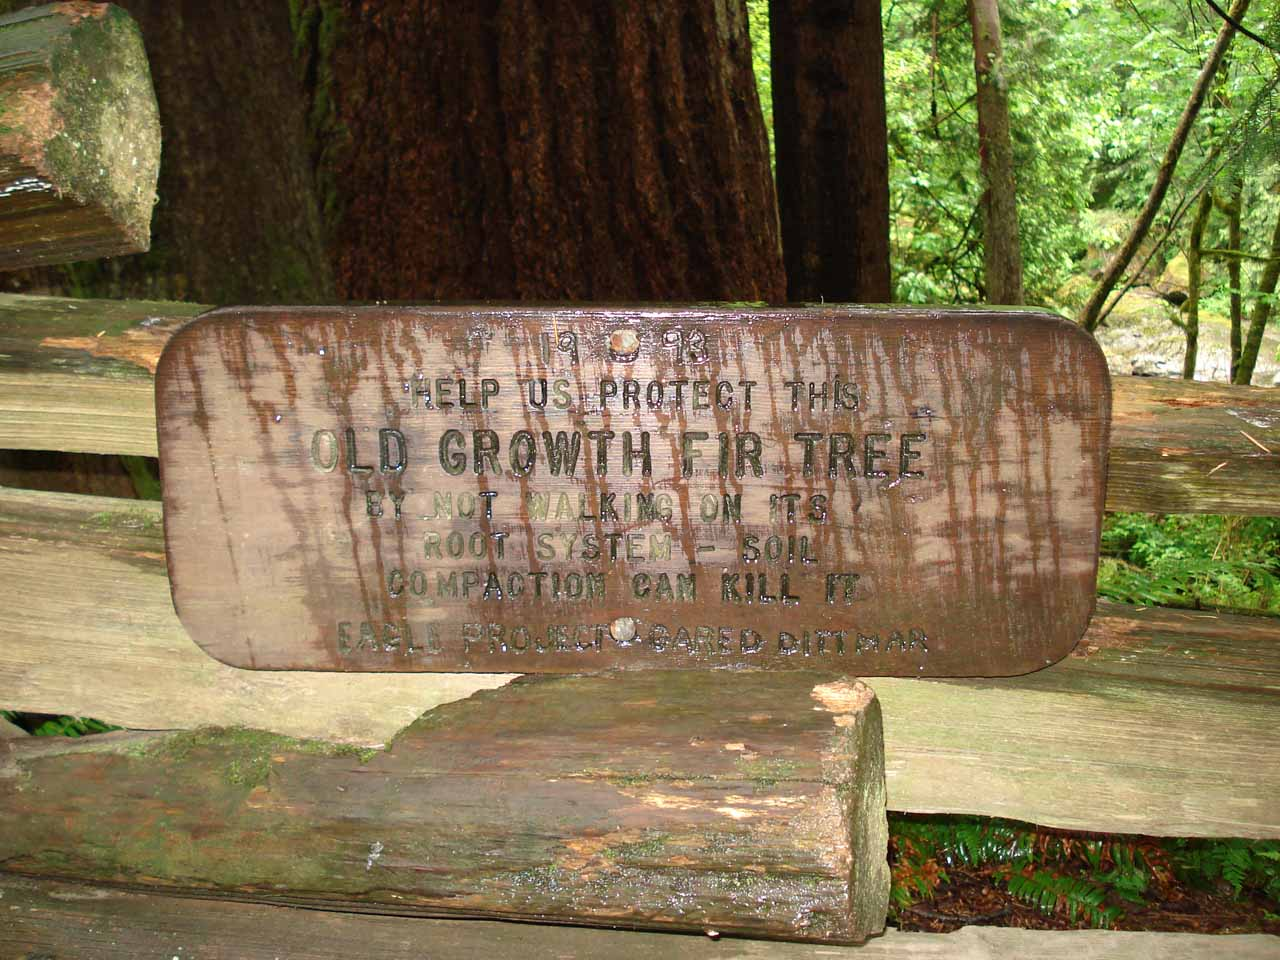 Old Growth Fir Tree signage we saw along the way to Twin Falls in 2006 though I missed this on the second visit